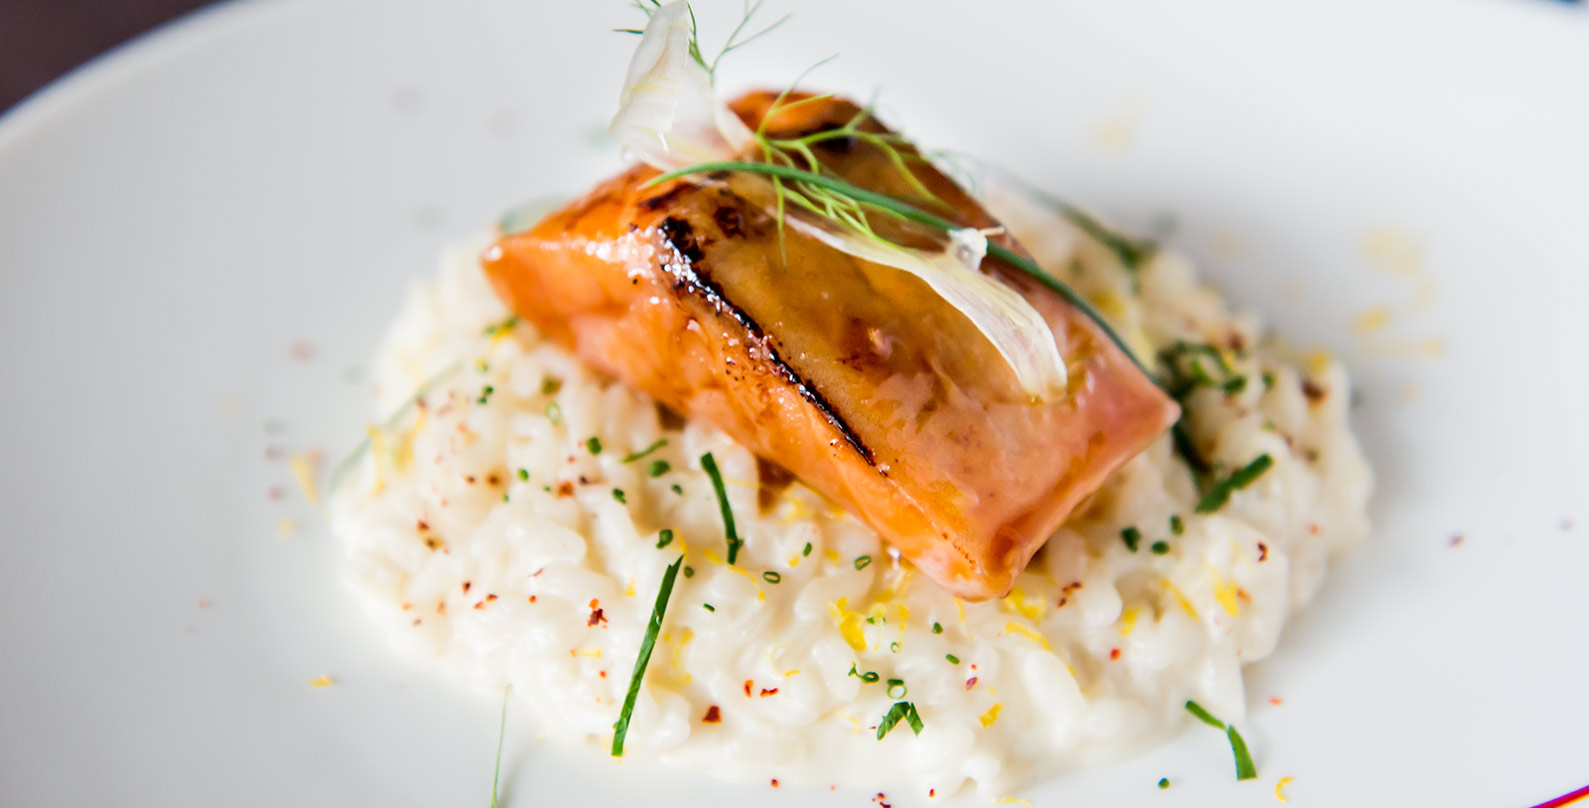 Salmon Confit Risotto from Fumee by Habanos at Millenia Walk in Promenade, Singapore